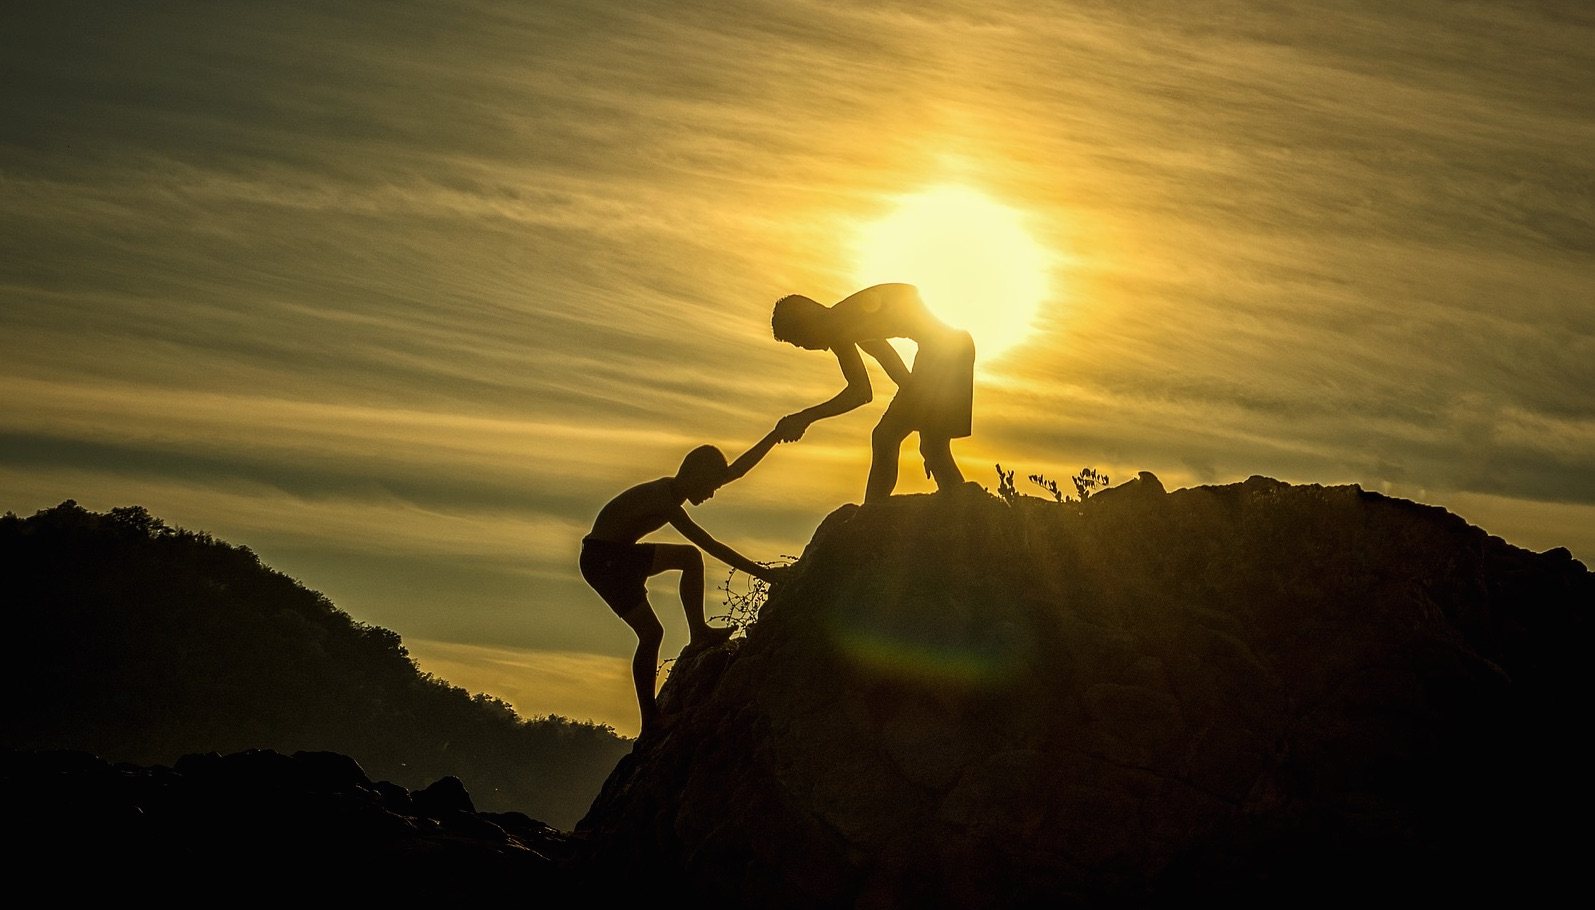 Top 30 Inspirational Teamwork Quotes Highly Motivational Faith